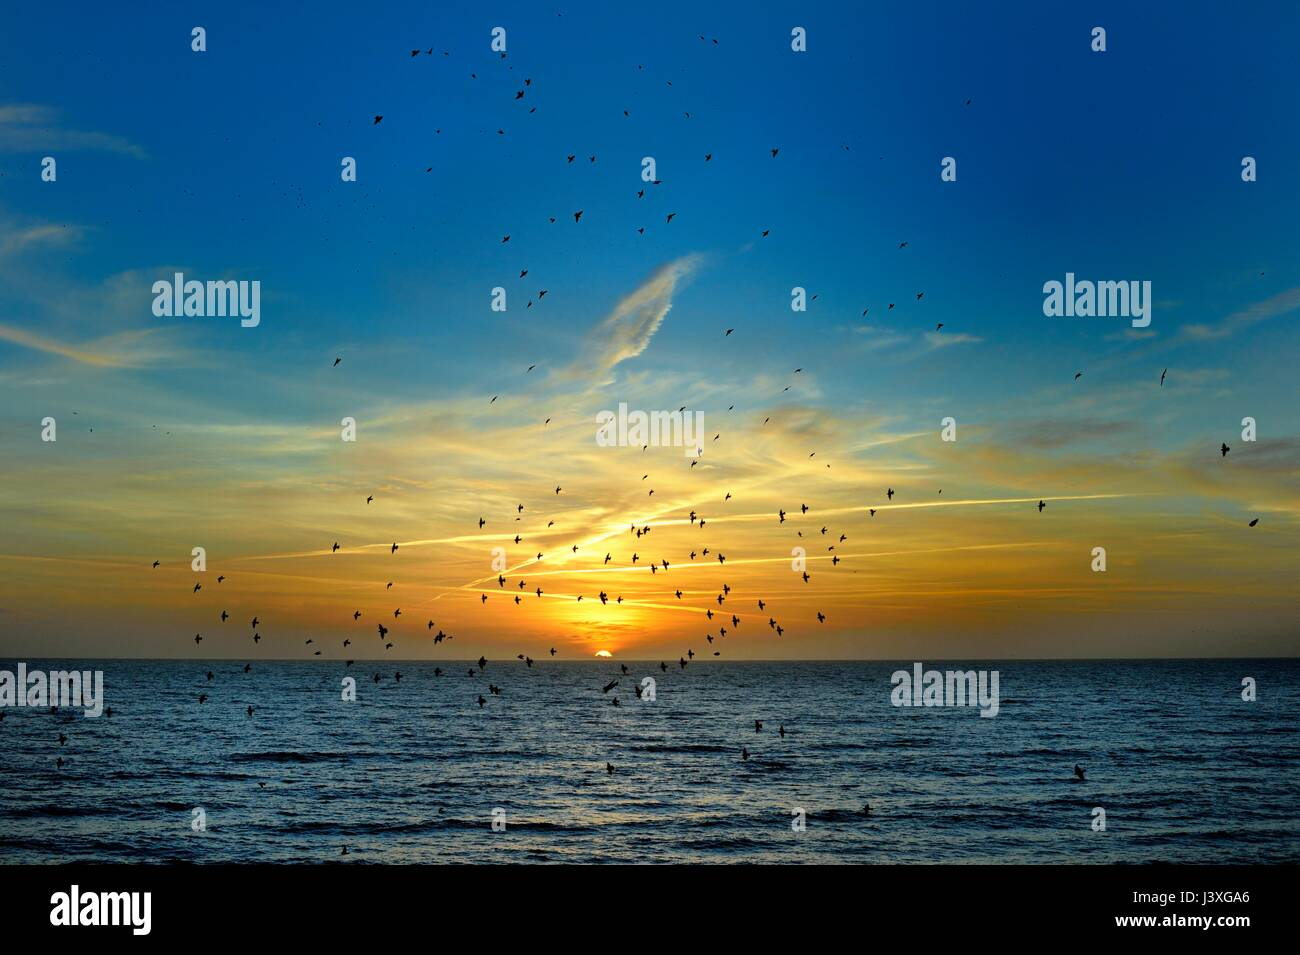 Starlings fly a murmuration over the sea at sunset - Stock Image